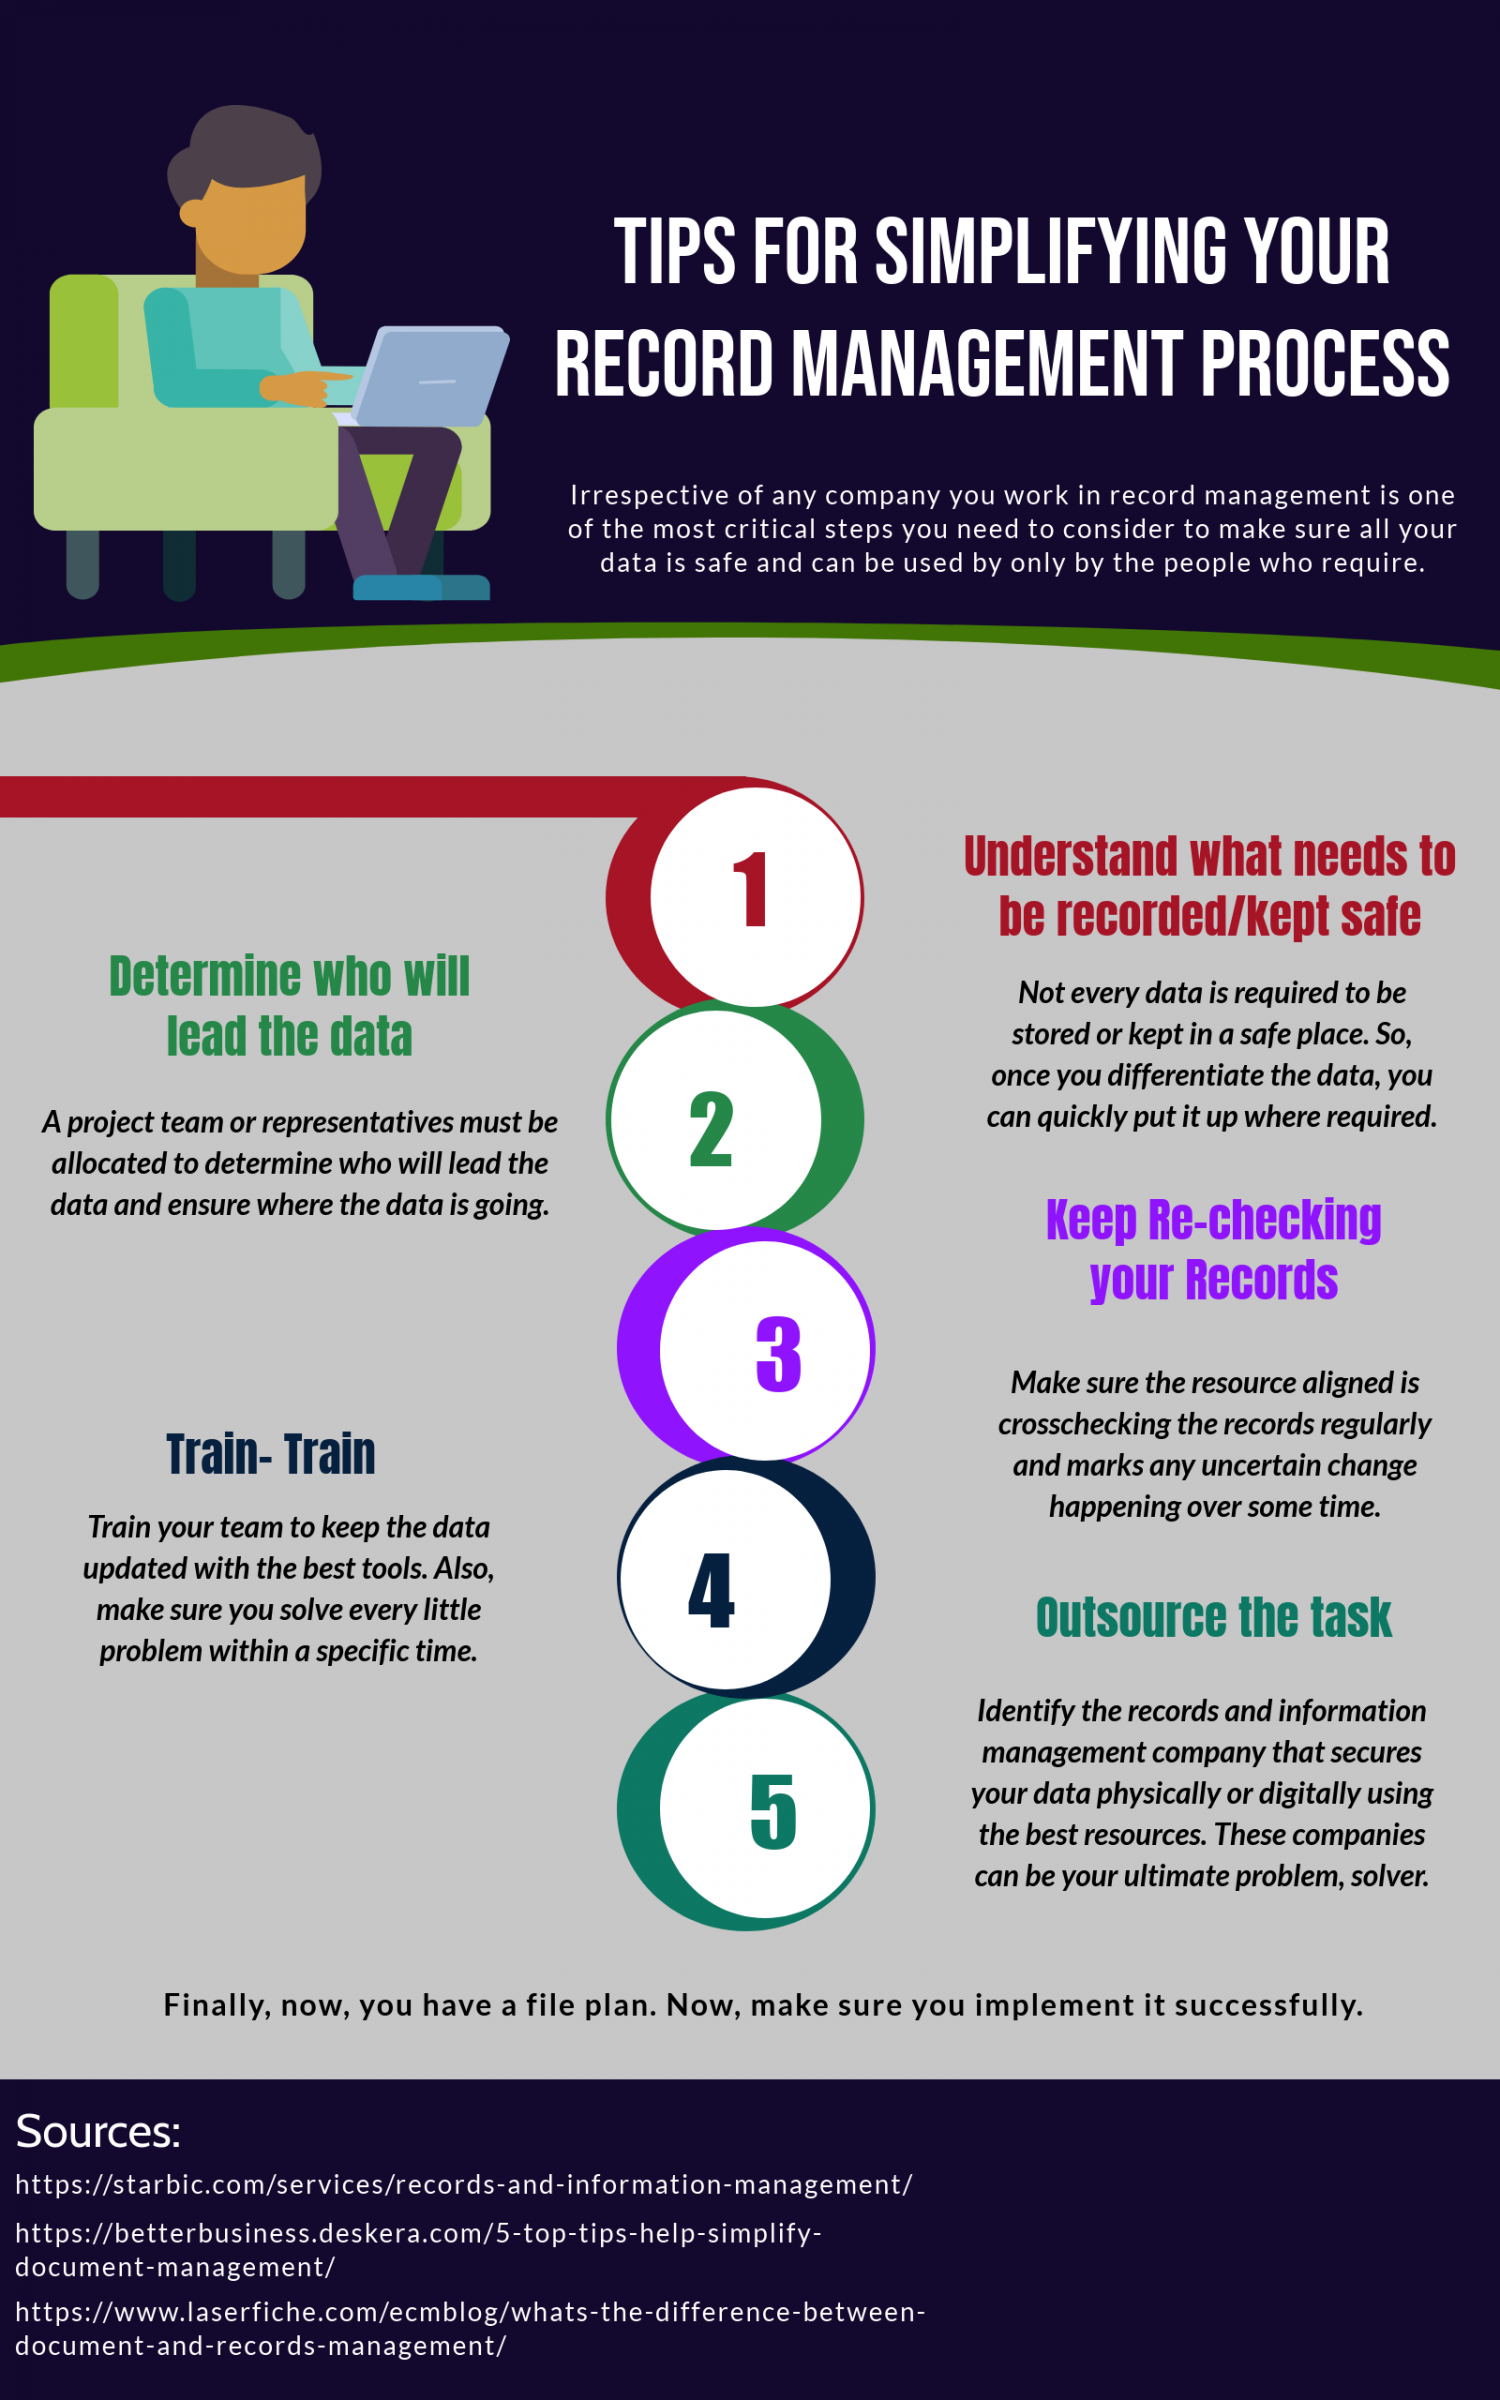 Tips for Simplifying Your Record Management Process Infographic